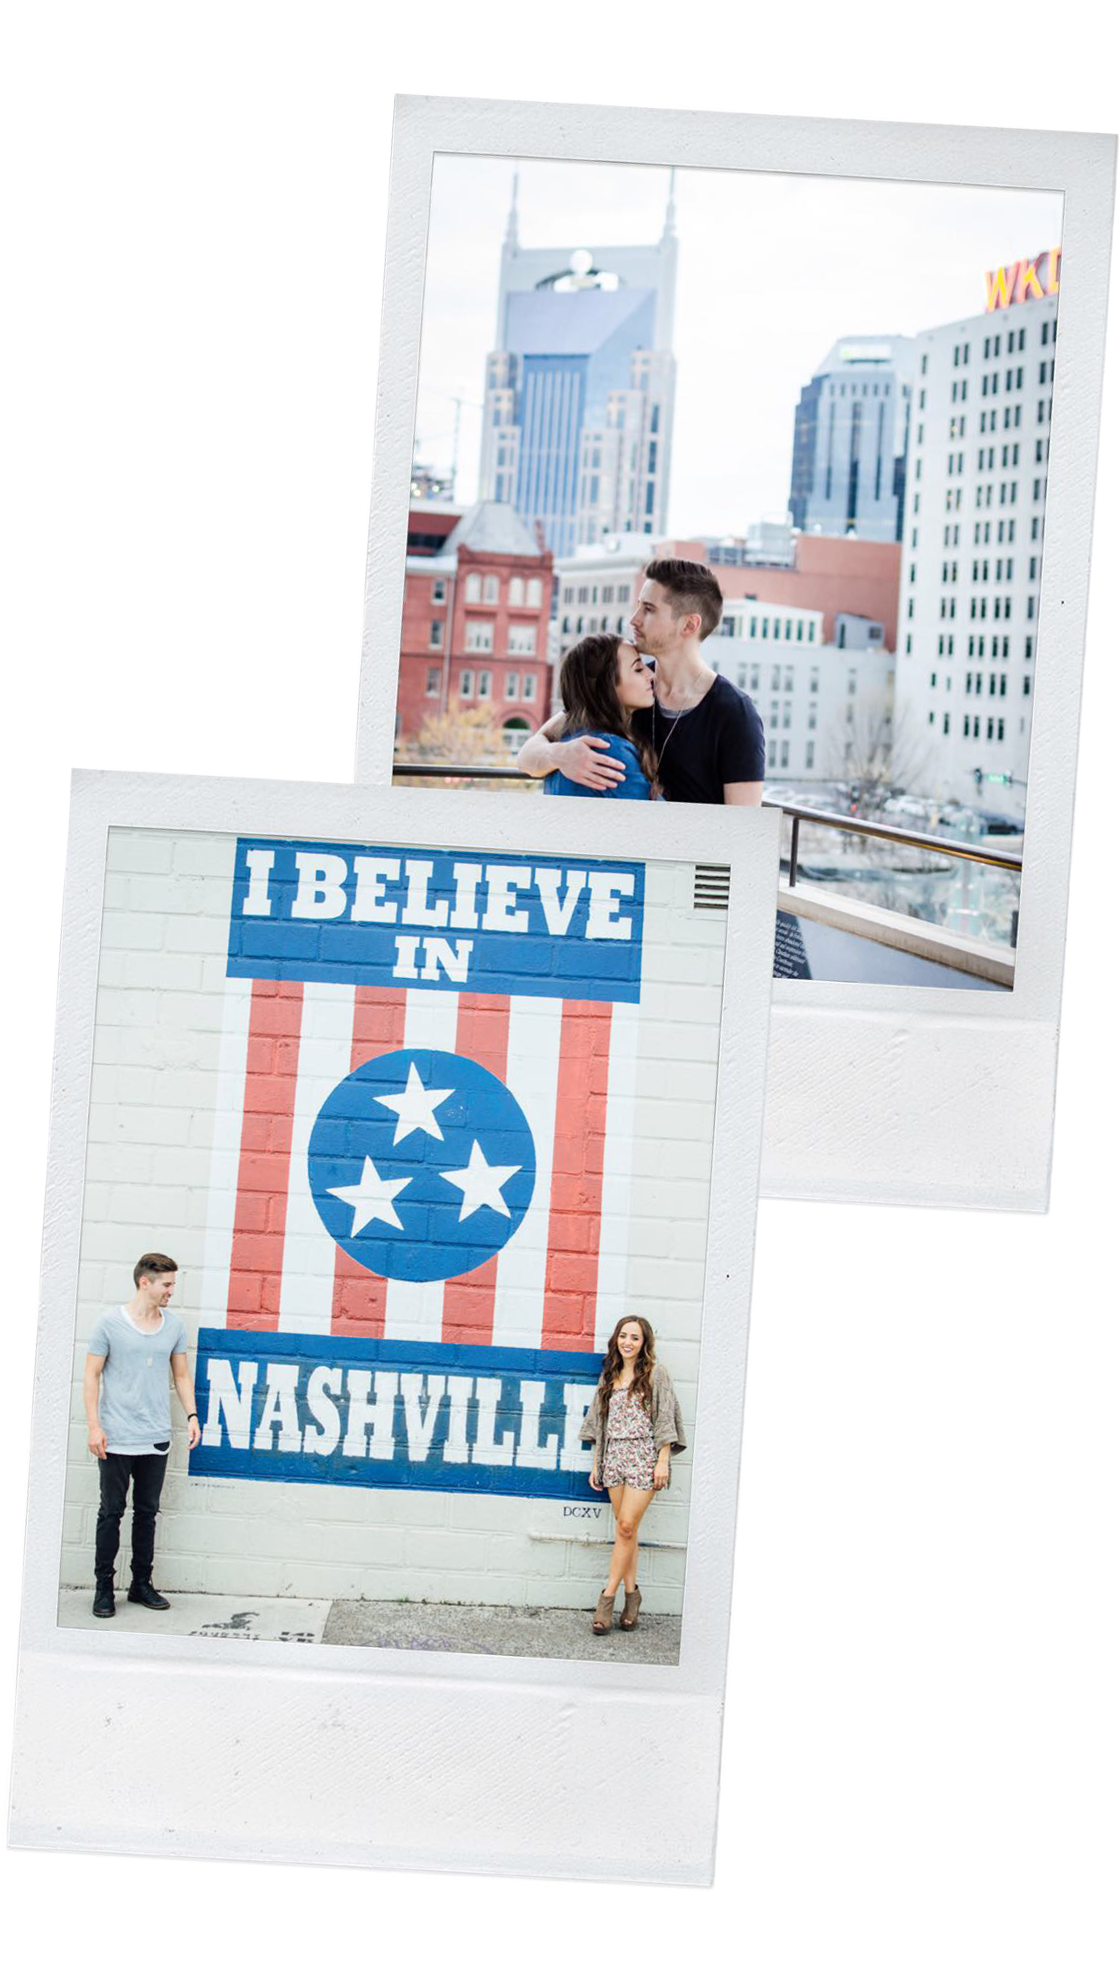 MOVING TO NASHVILLE - THE FIRST TIME I VISITED NASHVILLE, I (Noel) WAS 15. I HAD ALWAYS PLANNED TO MOVE AT SOME POINT, BUT IT NEVER FELT LIKE THE RIGHT TIME.EVENTUALLY, GOD MADE IT VERY CLEAR TO ME THAT I WOULDN'T MOVE TO NASHVILLE BEFORE I WAS MARRIED. I DIDN'T QUITE EXPECT HOW THAT WOULD PLAY OUT, BUT YOU KNOW. GOD HAS A WAY OF CHANGING OUR PLANS. Enter Glenn and the fastest year ever of dating - Engaged - married - NASHVILLE.